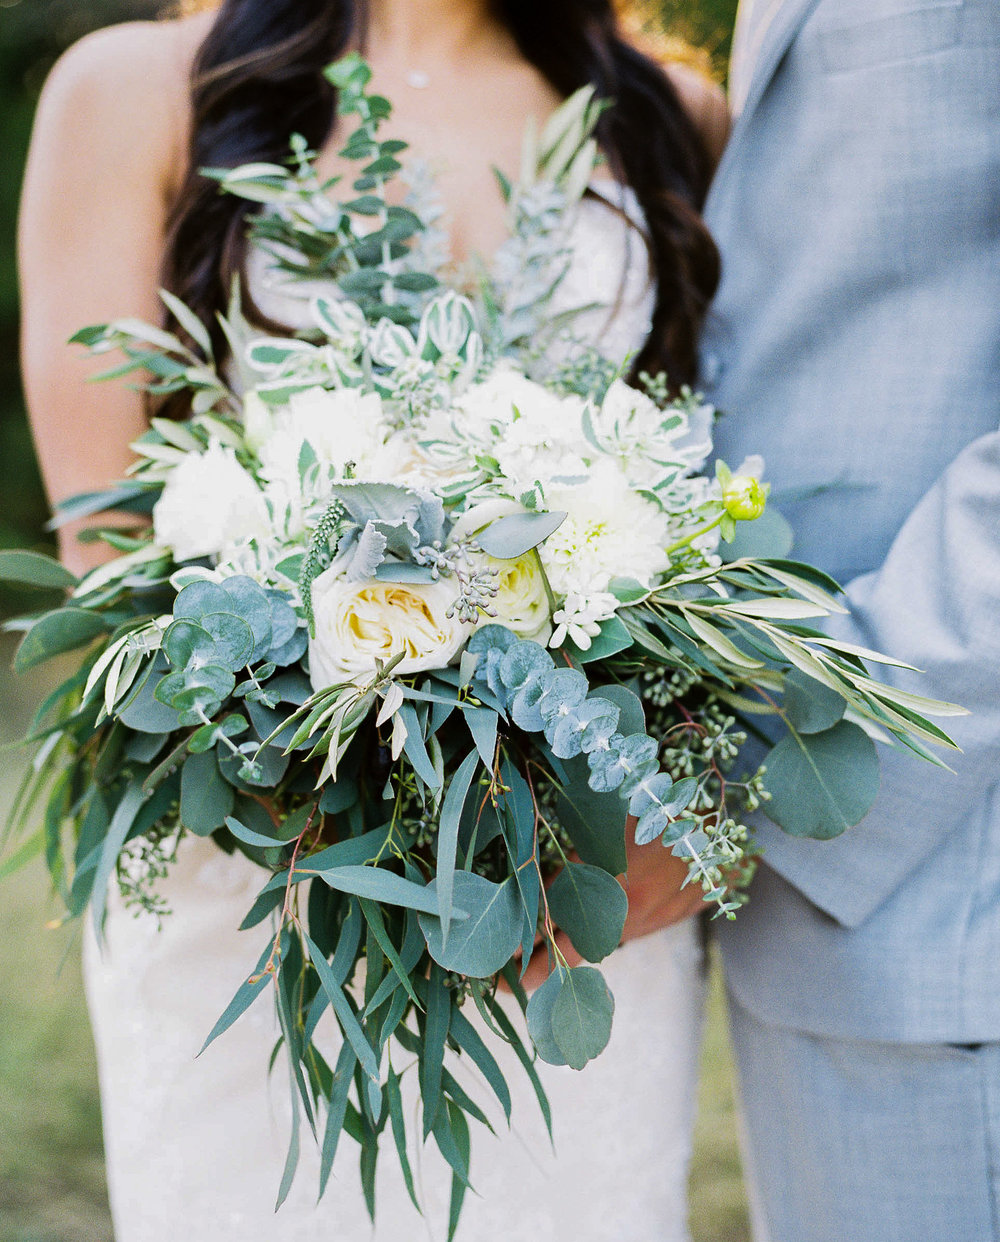 Whimsy and organic inspired bridal and bouquets with white roses, eucalyptus, ranunculus at Vista West Ranch. Petal Pushers floral event design studio located in Dripping Springs, Texas.